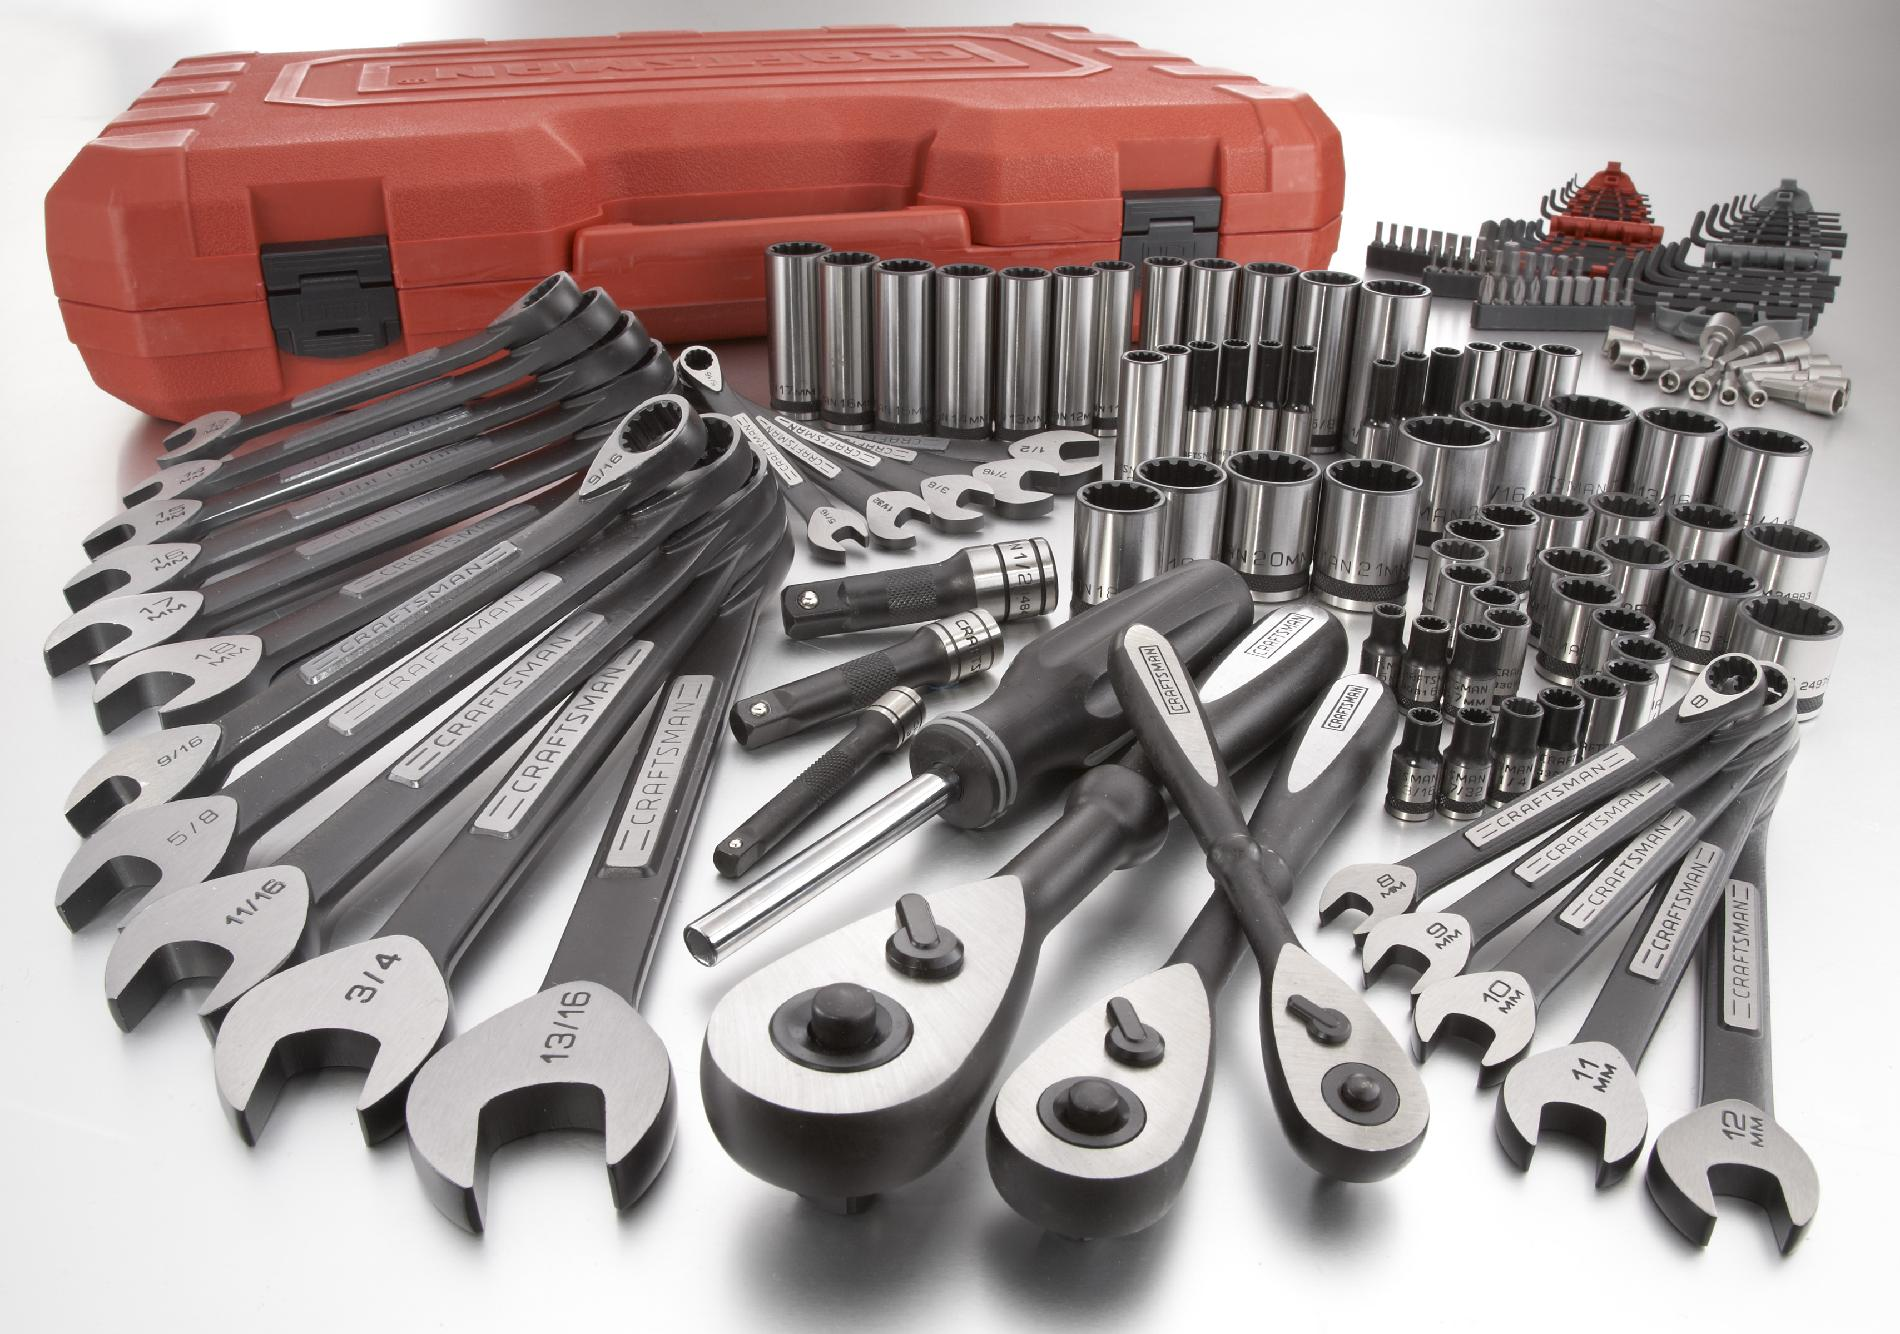 Craftsman 153 Piece Tool Set